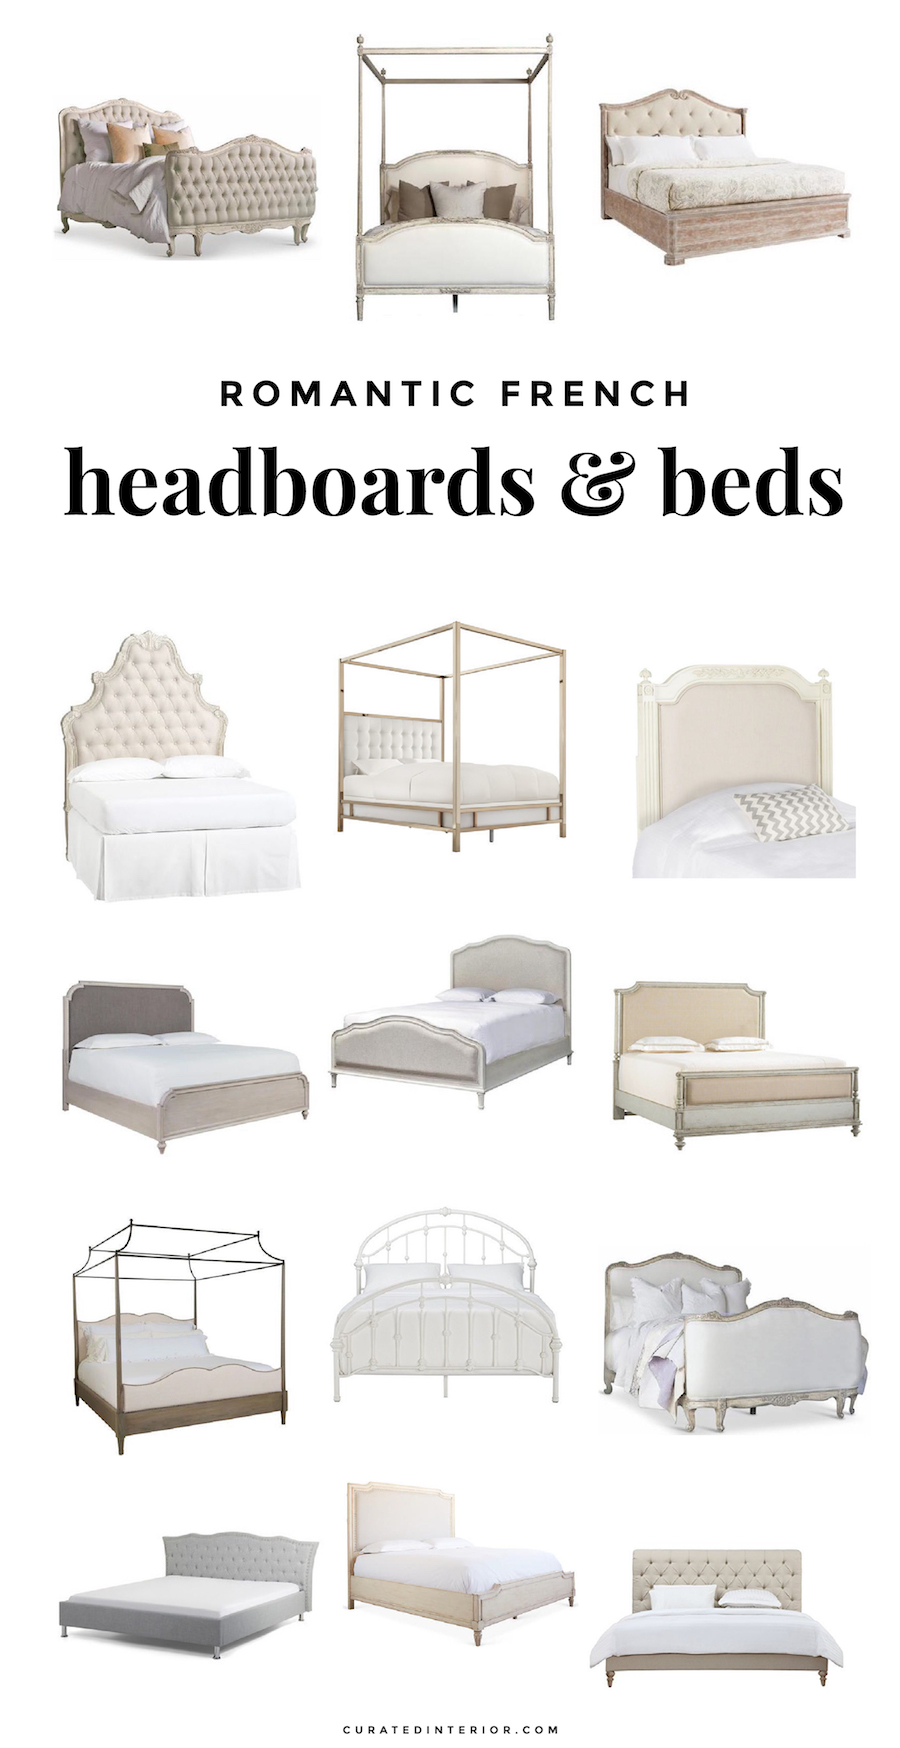 Romantic French Headboards and French Beds We Adore for the Bedroom